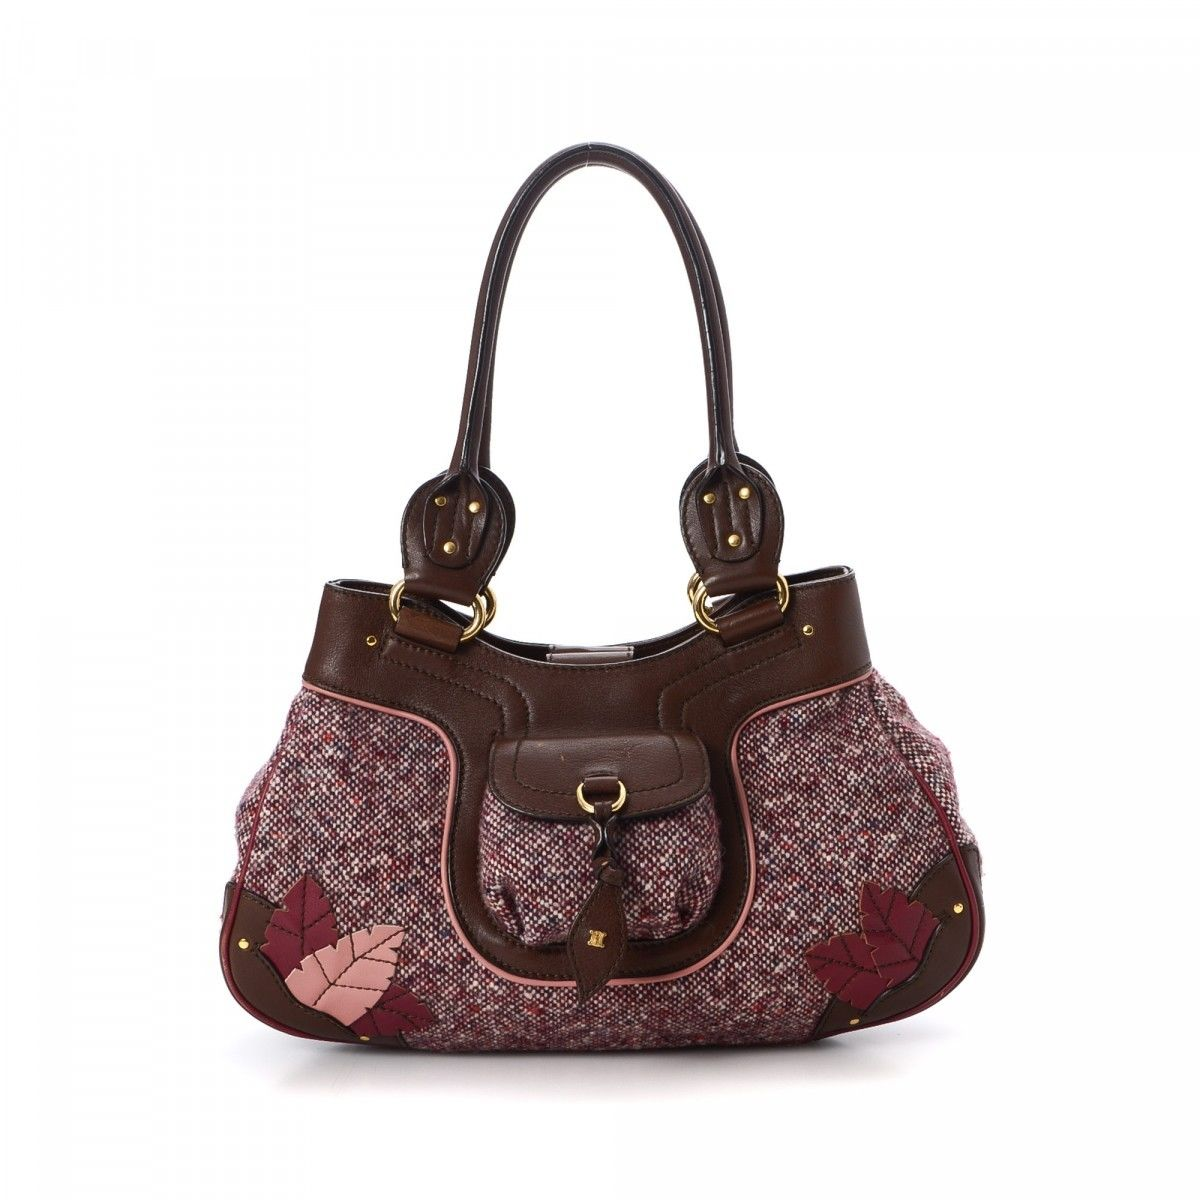 16dec3931f649 Céline Tweed Shoulder Bag. Free Shipping. LXRandCo guarantees the authenticity  of this vintage ...